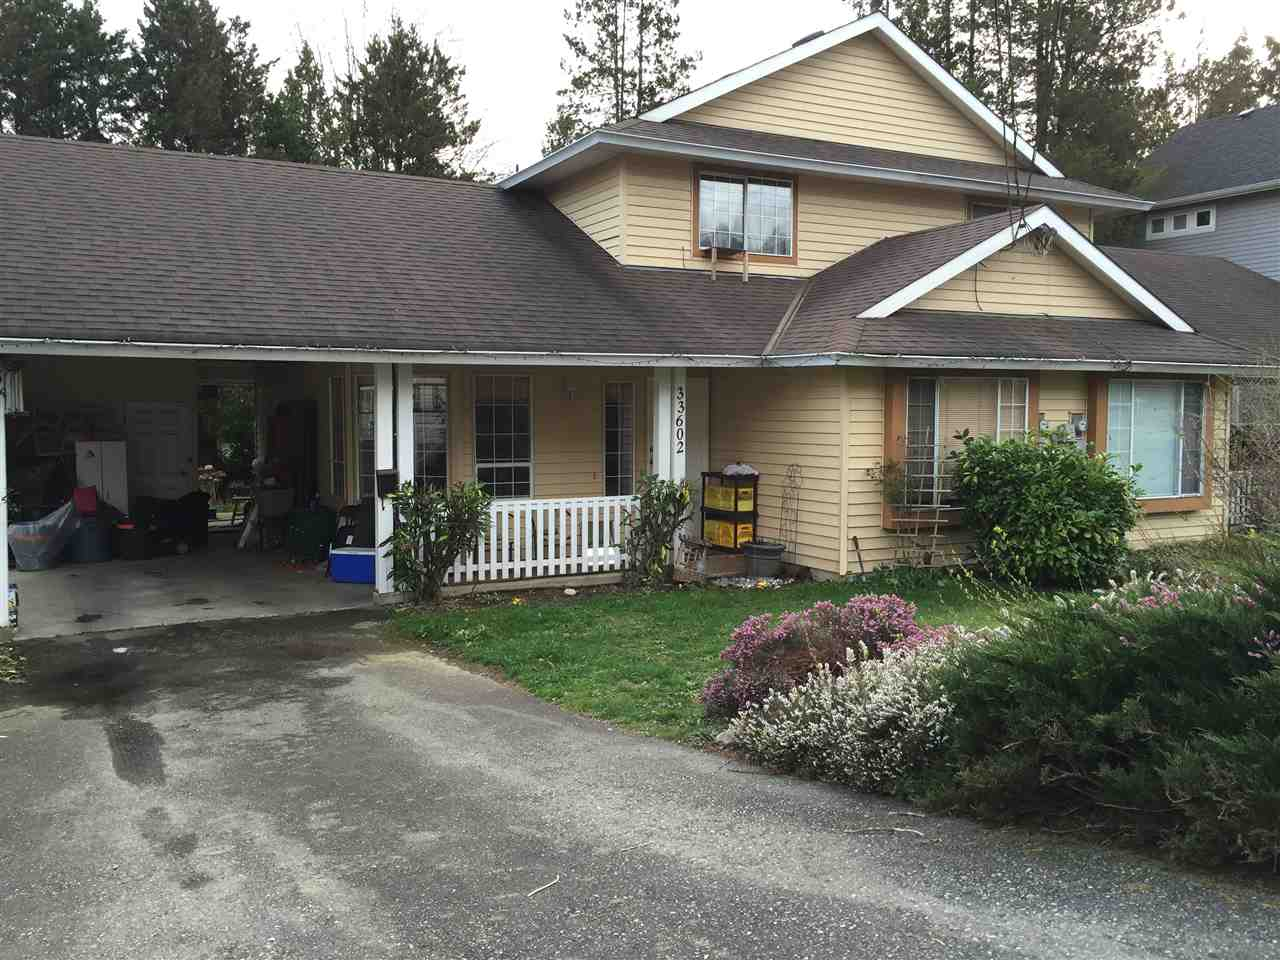 Main Photo: 33602 2 Avenue in Mission: Mission BC House 1/2 Duplex for sale : MLS® # R2042001